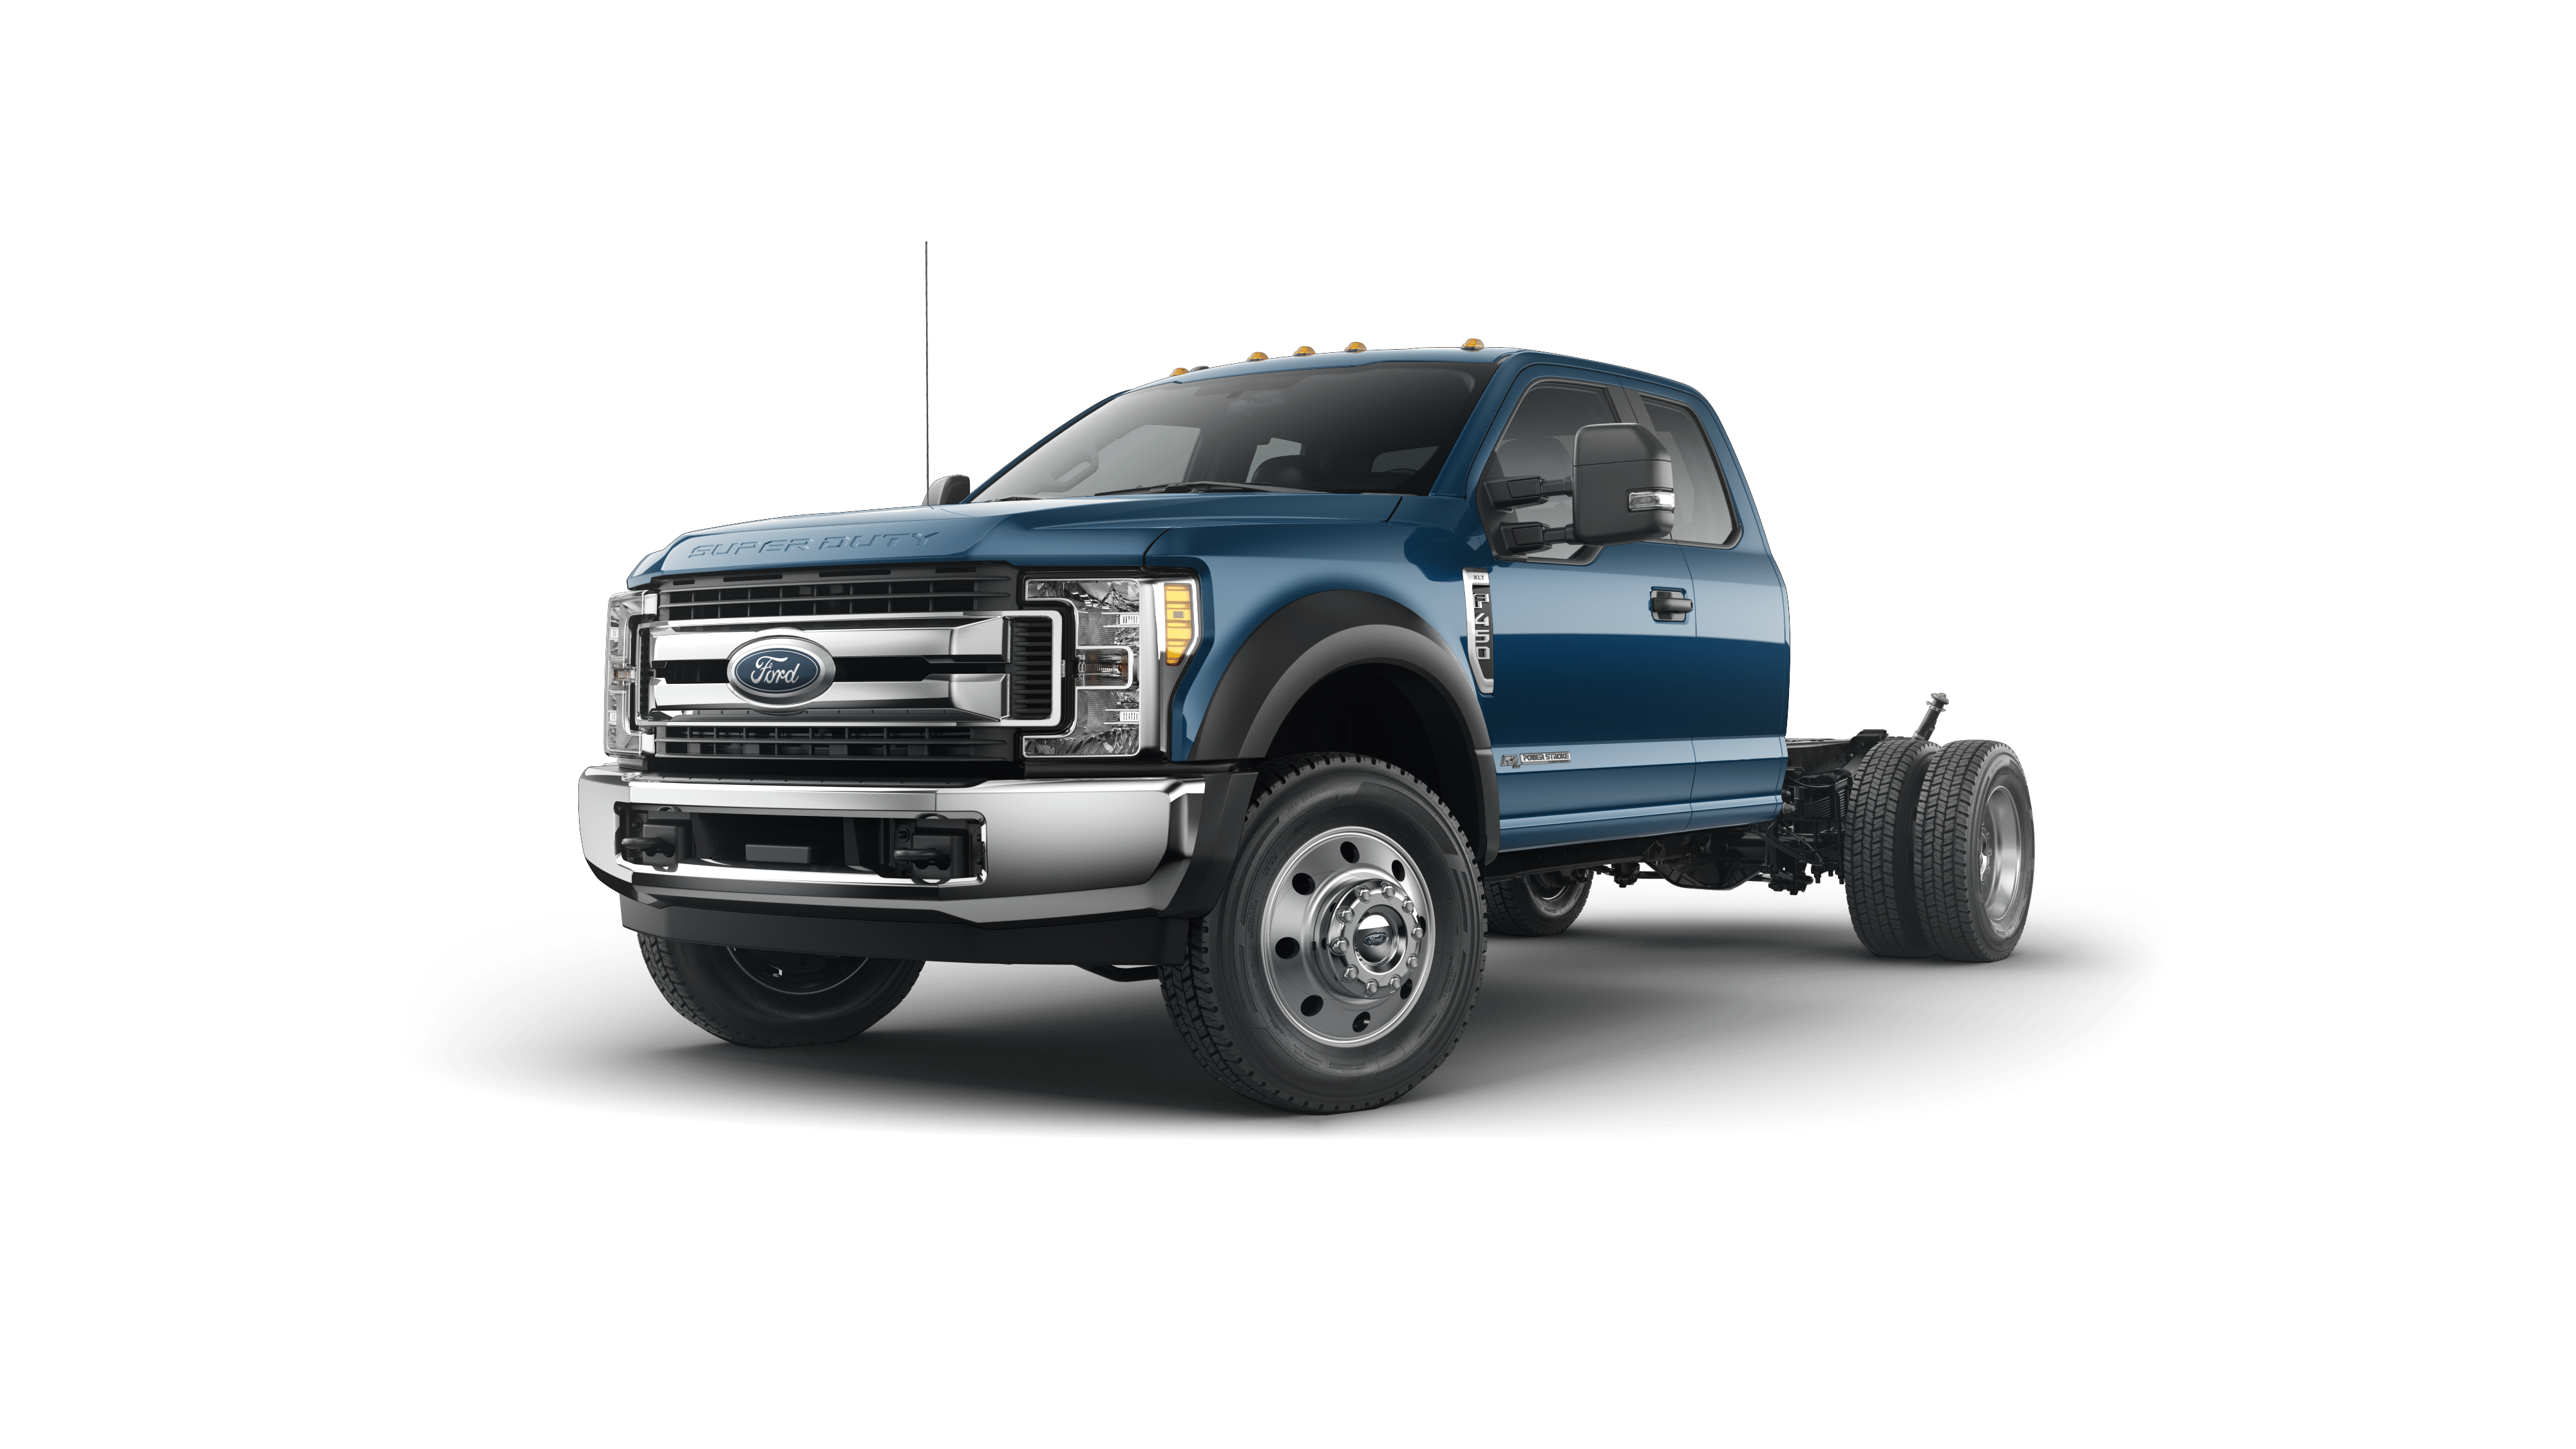 2018 ford super duty f 450 drw for sale in terrell. Black Bedroom Furniture Sets. Home Design Ideas